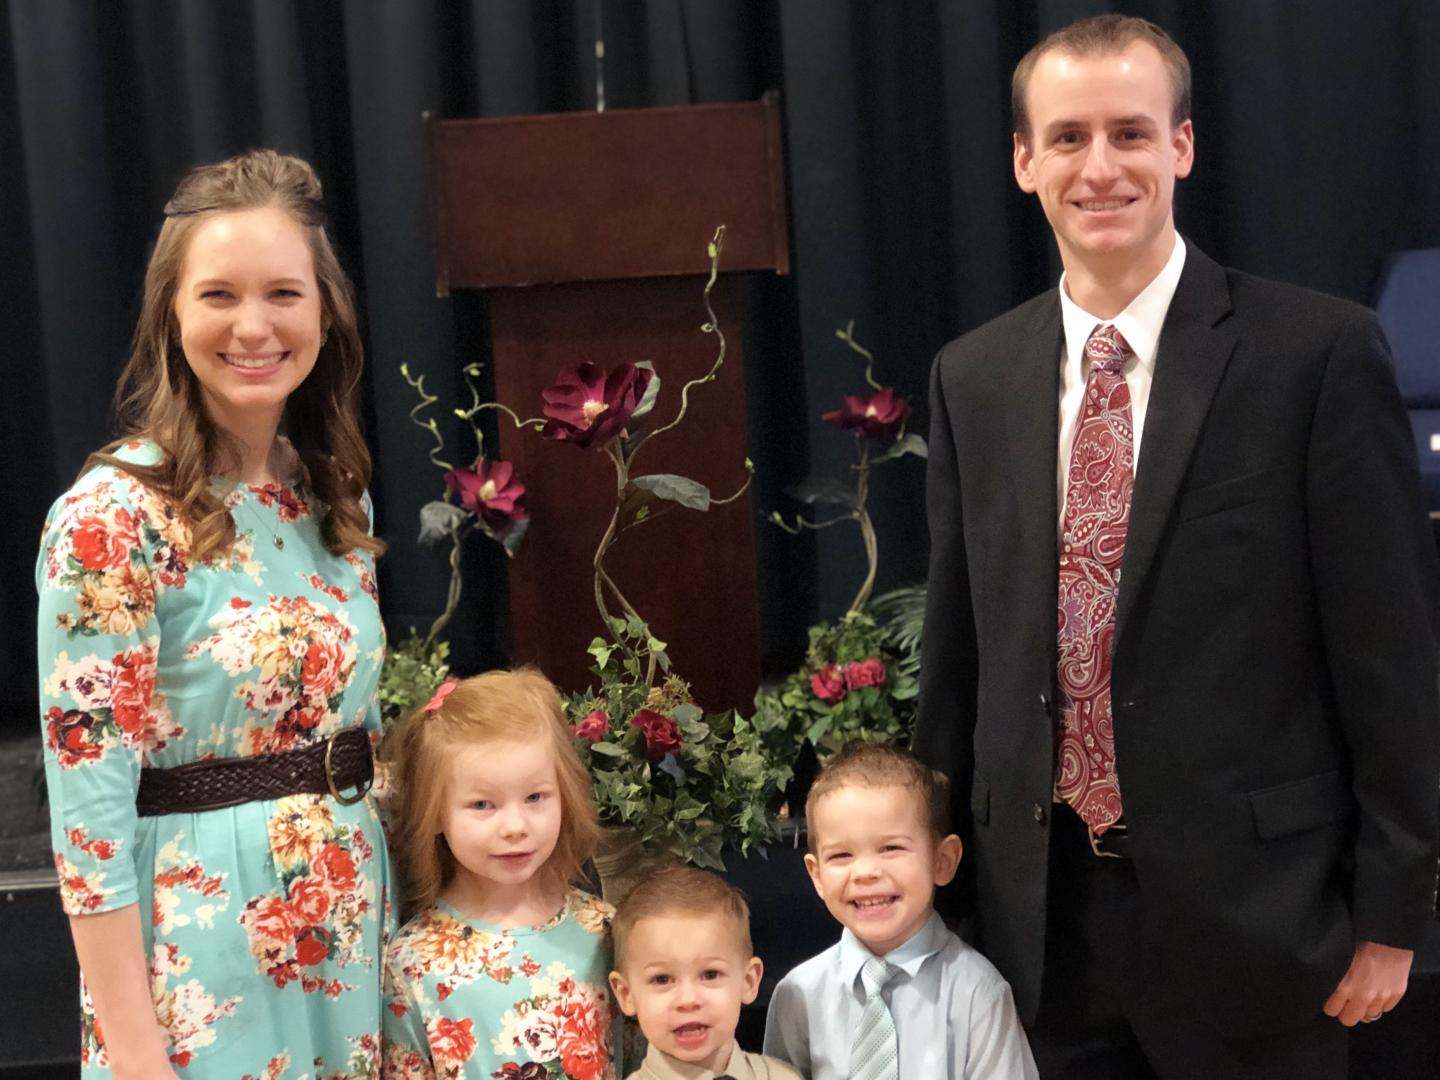 Our family on the church's 2nd anniversary in February